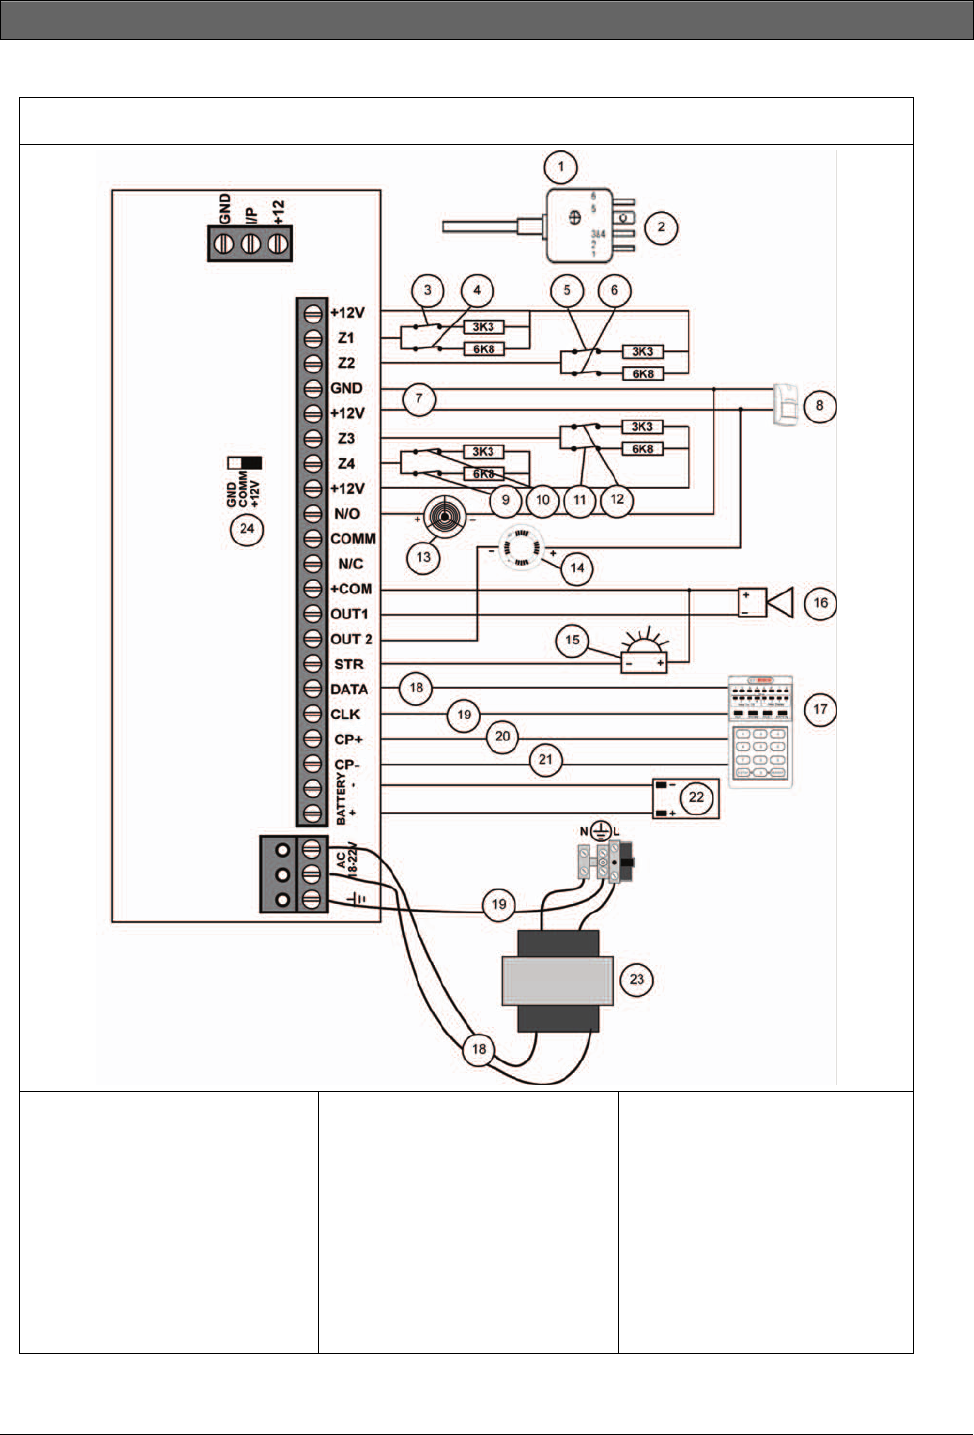 [DIAGRAM_34OR]  Bosch Appliances ICP-CC404 20.3 Diagrams | Icp Wiring Diagrams |  | Manuals